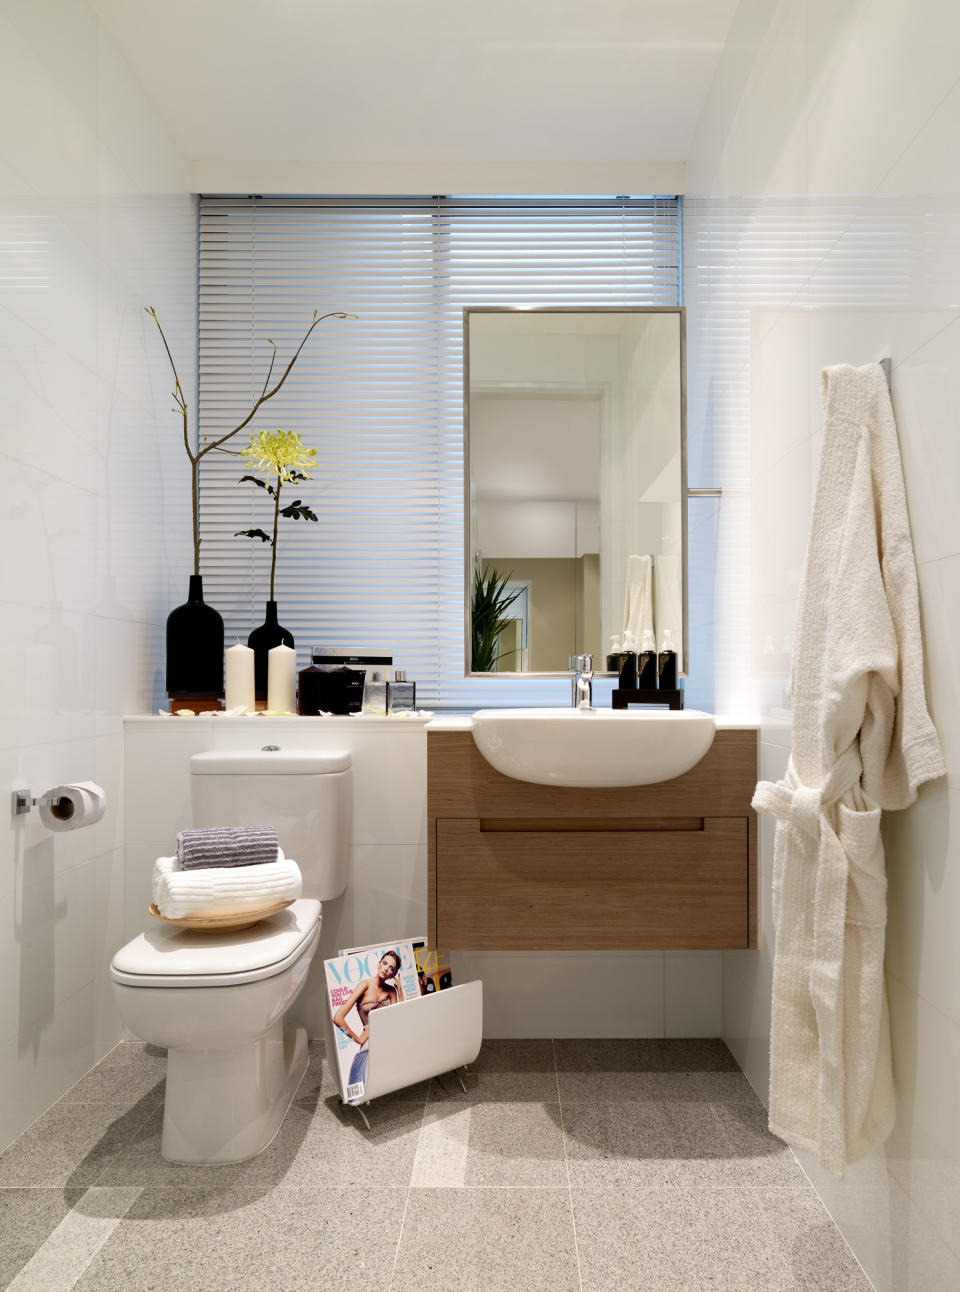 Bathroom Interior Decorating Best Of What S the Best Way to Decorate Your Bathroom